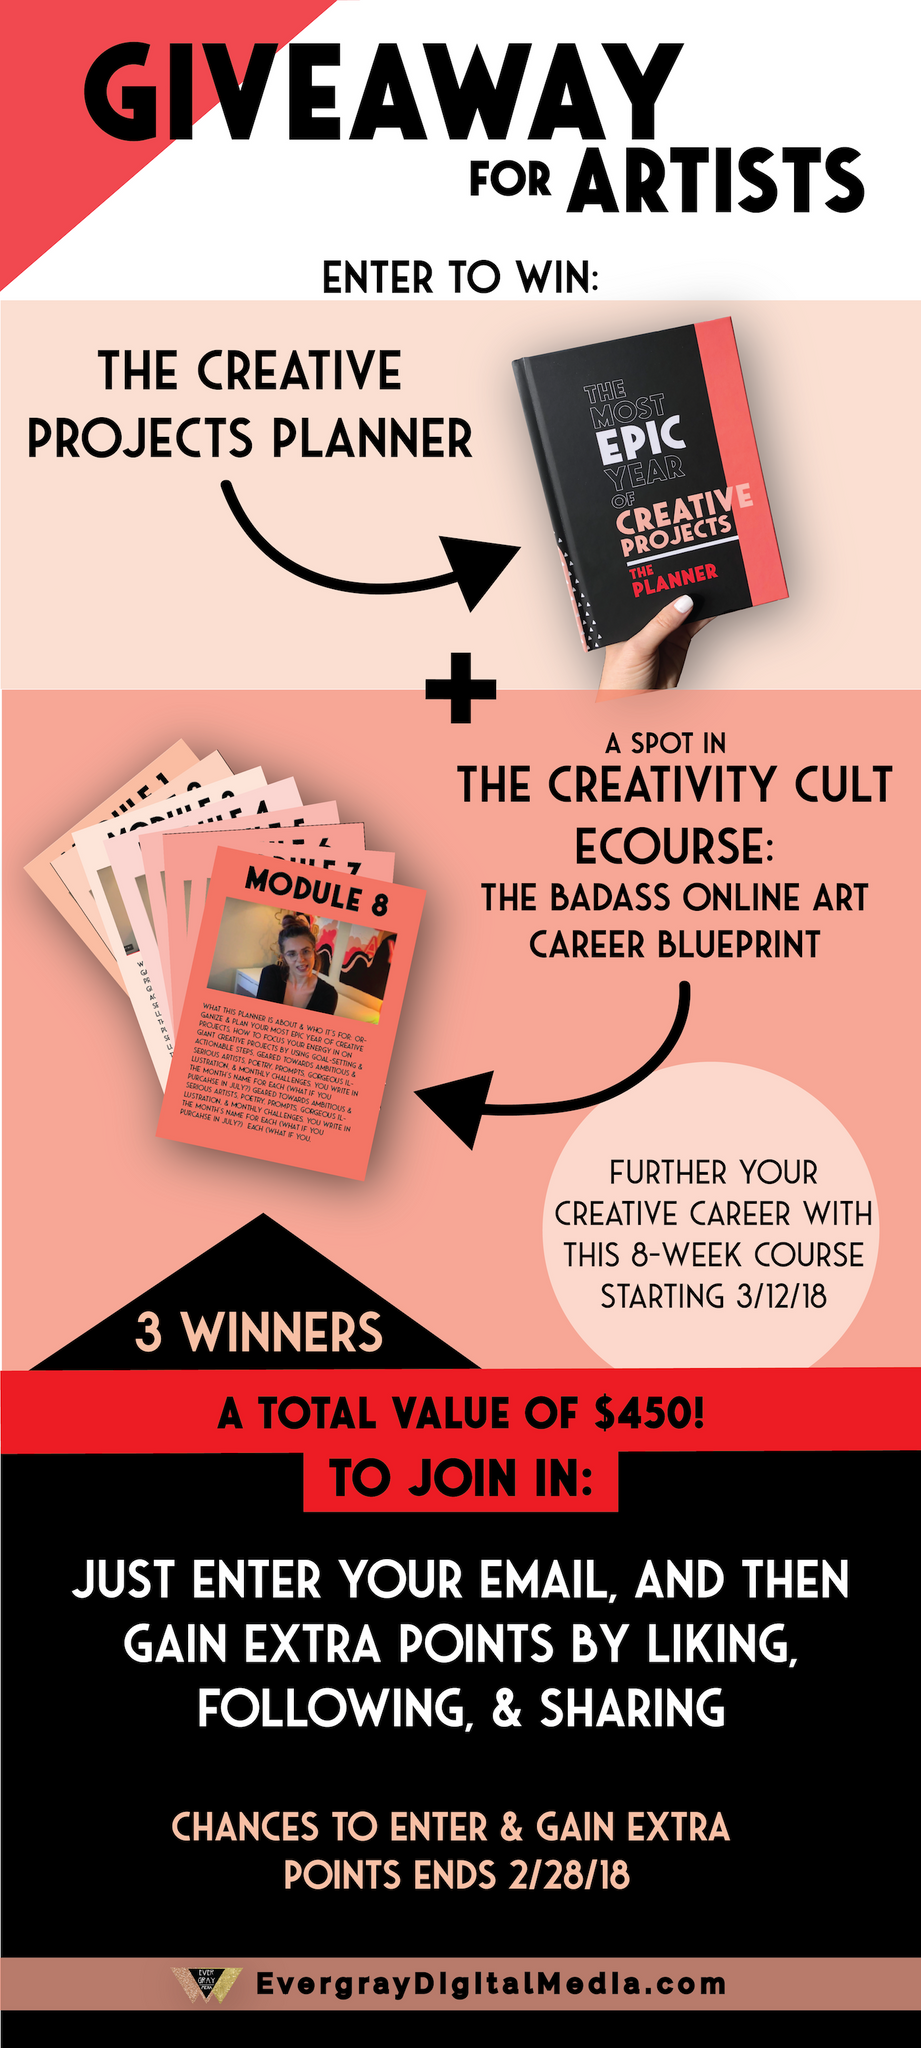 2018 Giveaway for Artists - Enter to win the Creative Projects Planner + a spot in the Creativity Cult eCourse: The Badass Online Art Career Blueprint